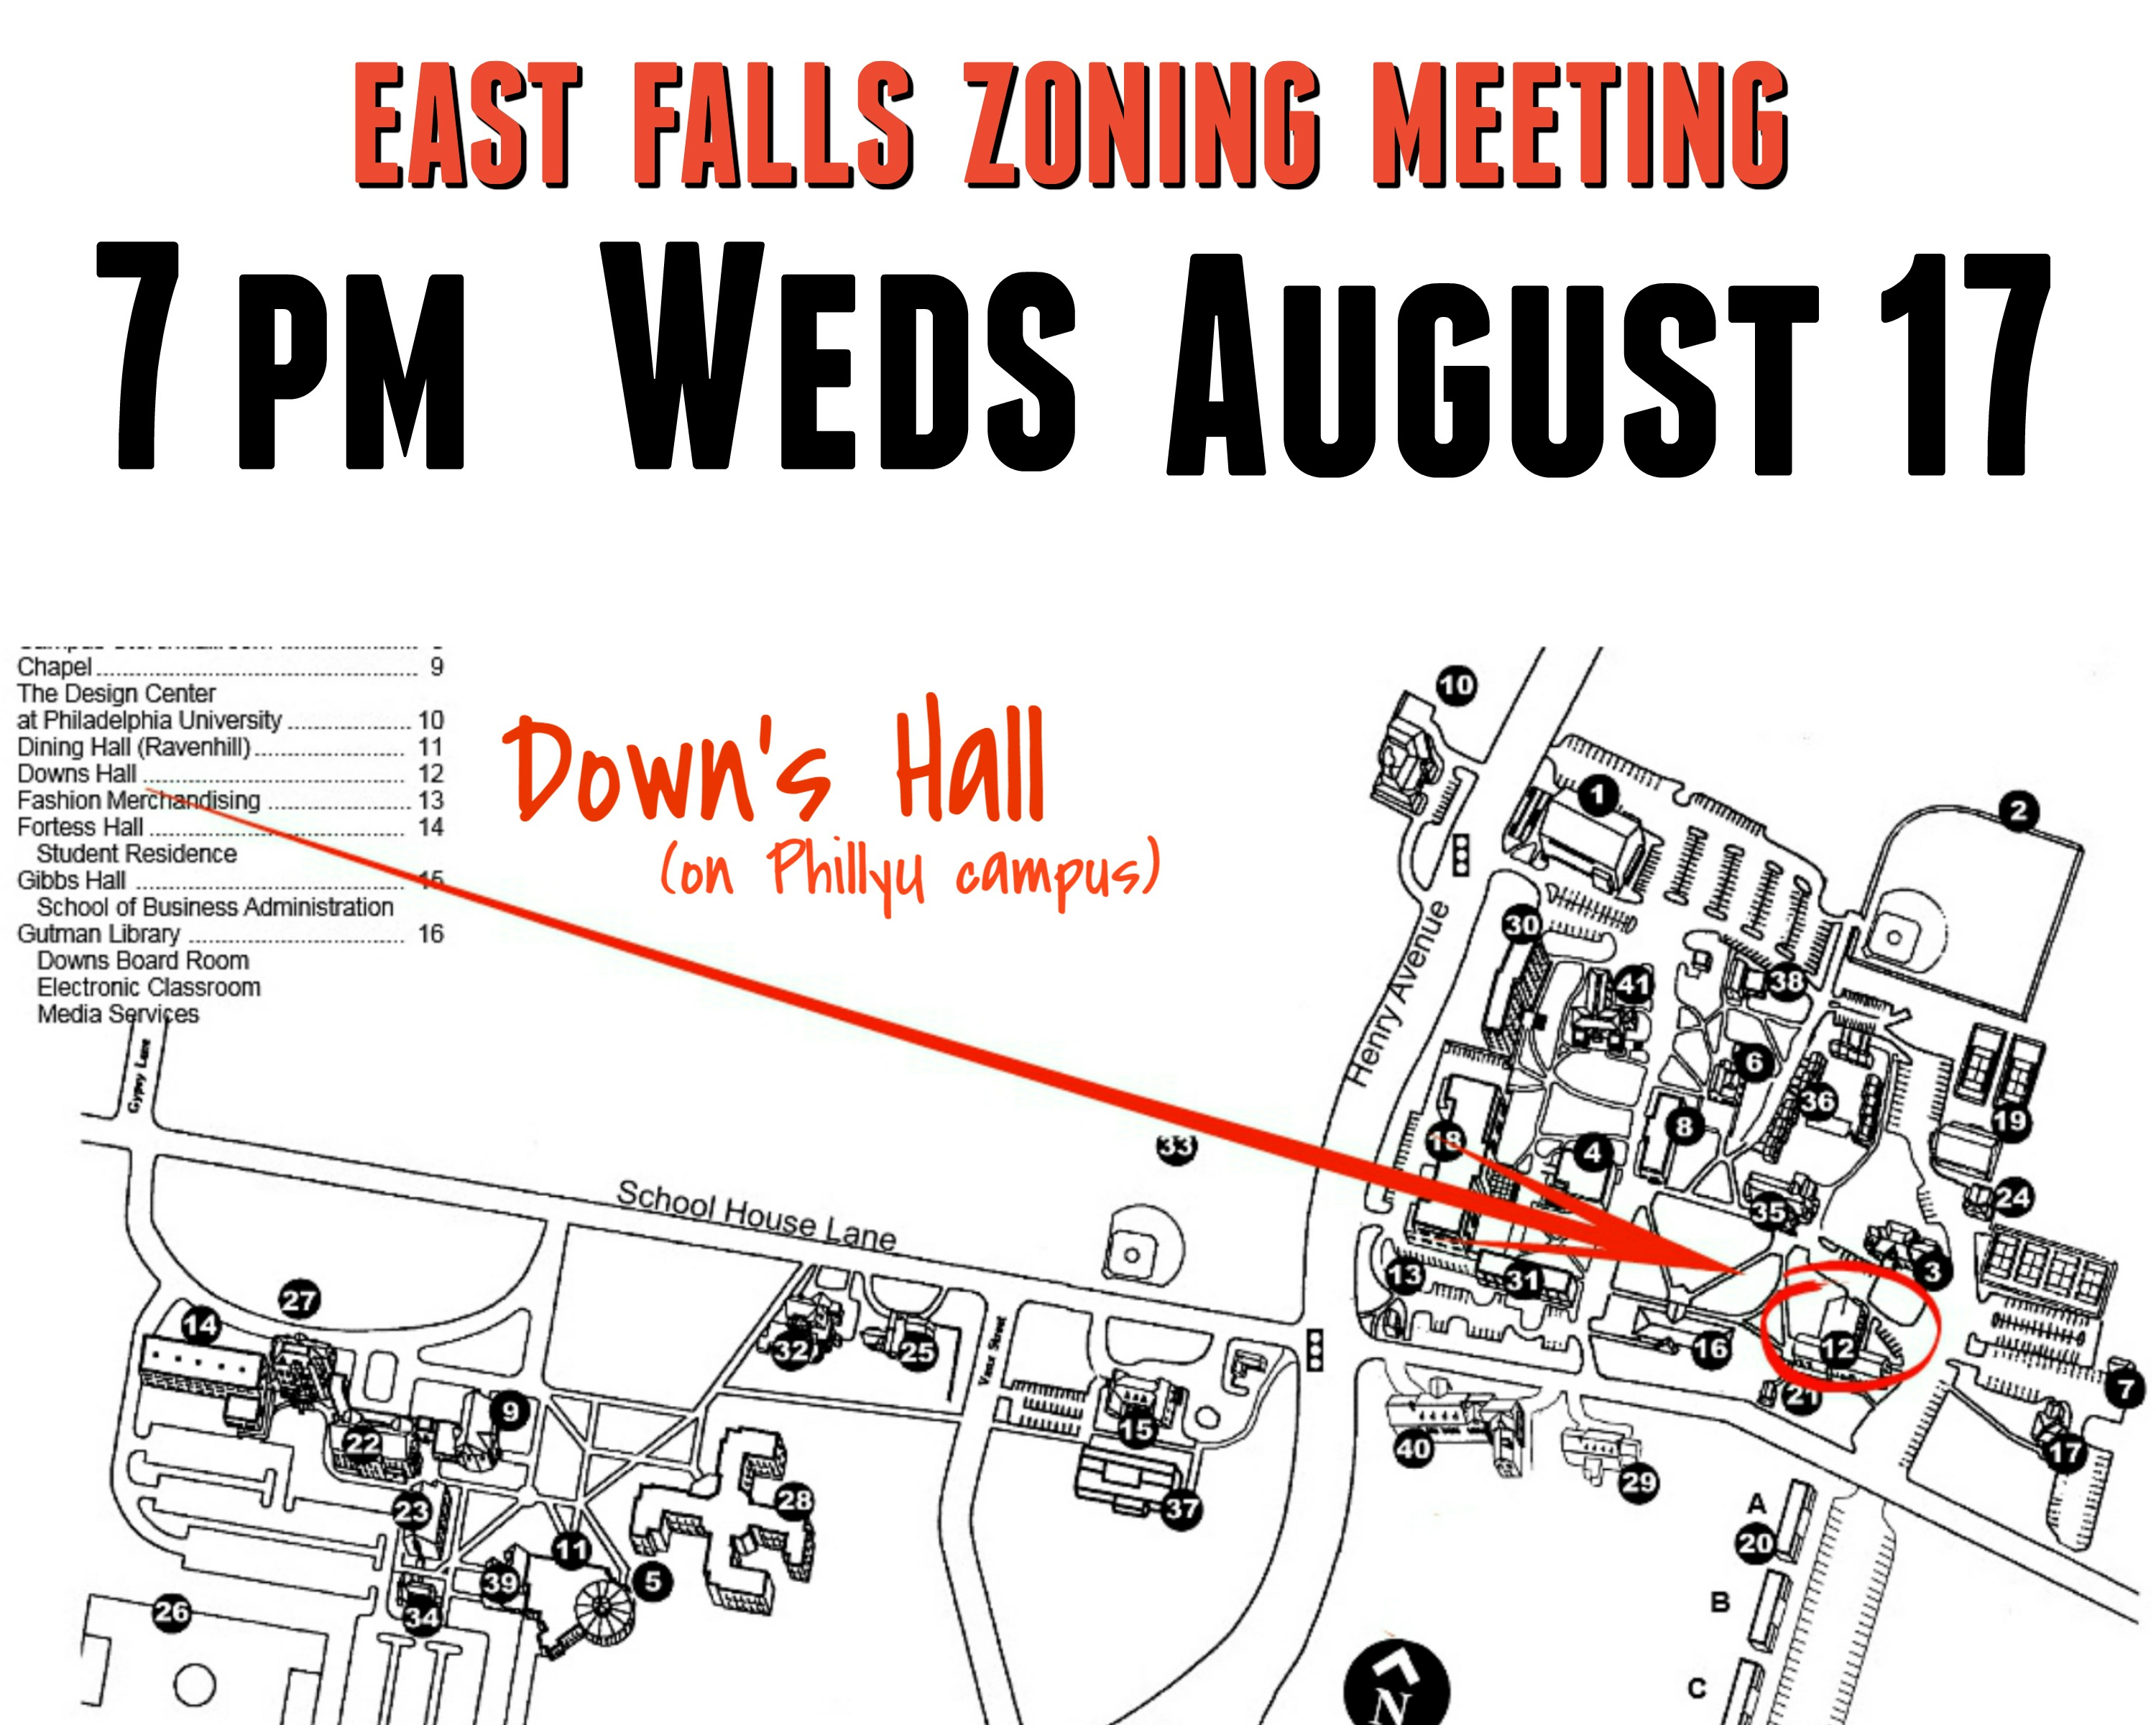 EastFallsLocal zoning meeting announcement AUG